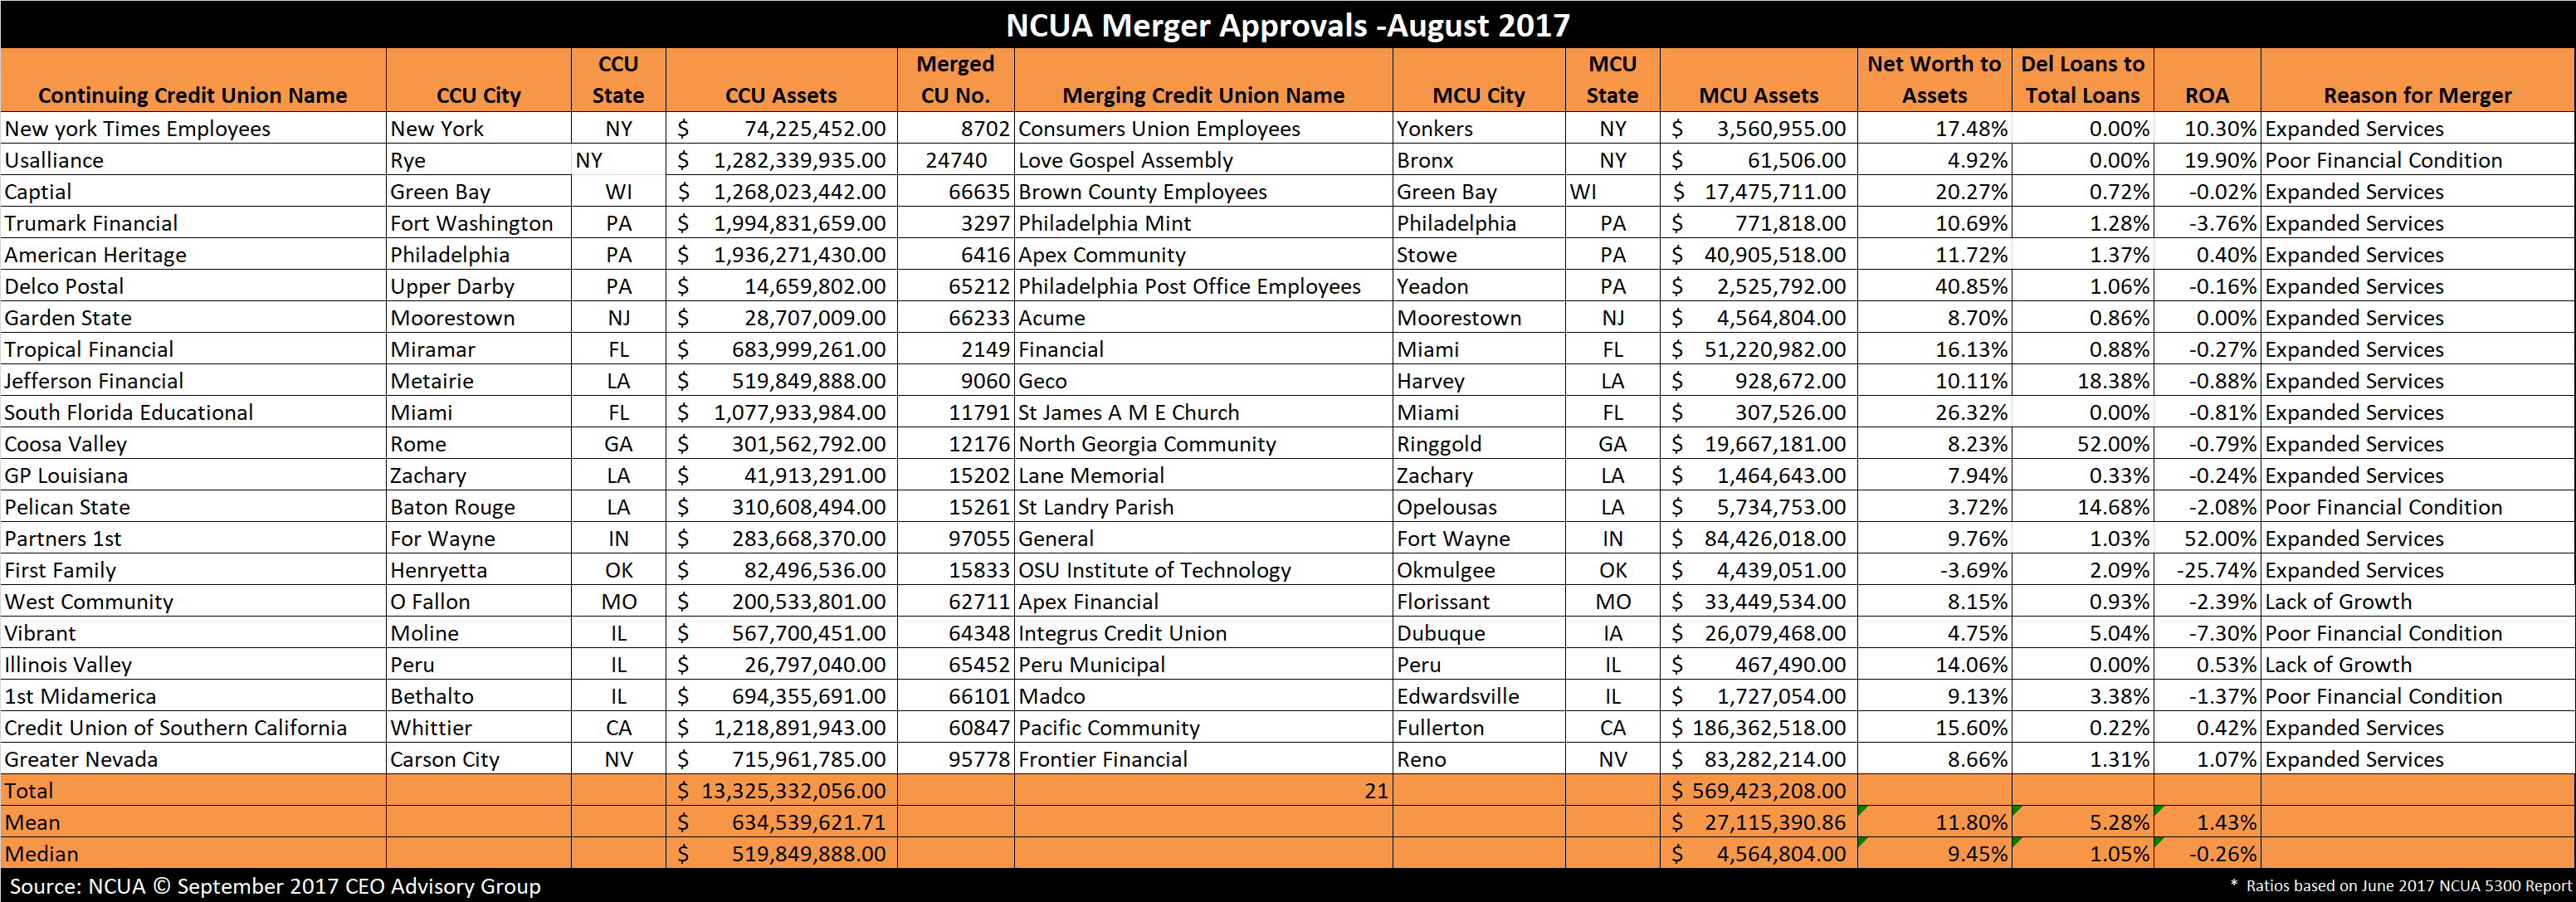 Credit Union Mergers Approvals - August 2017